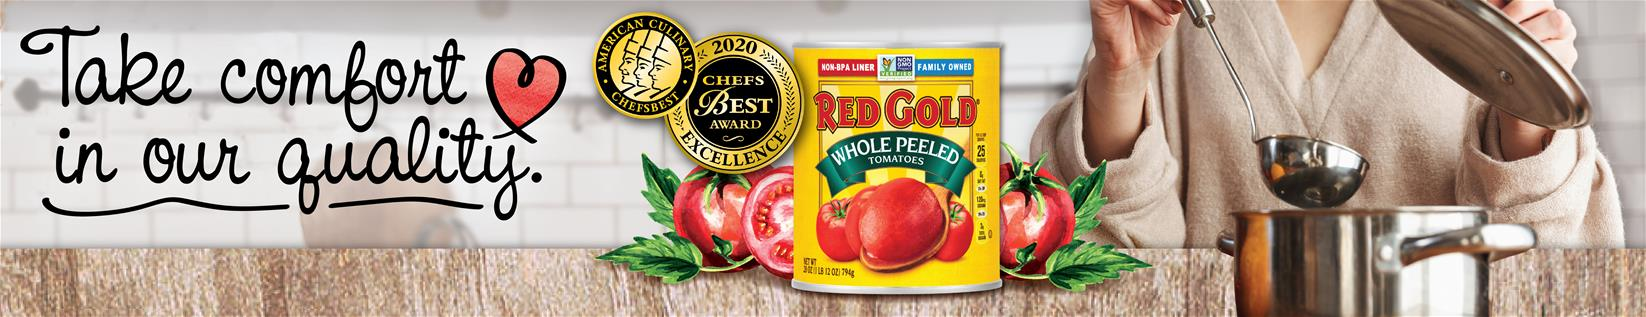 Image of Red Gold tomatoes and steel soup pot